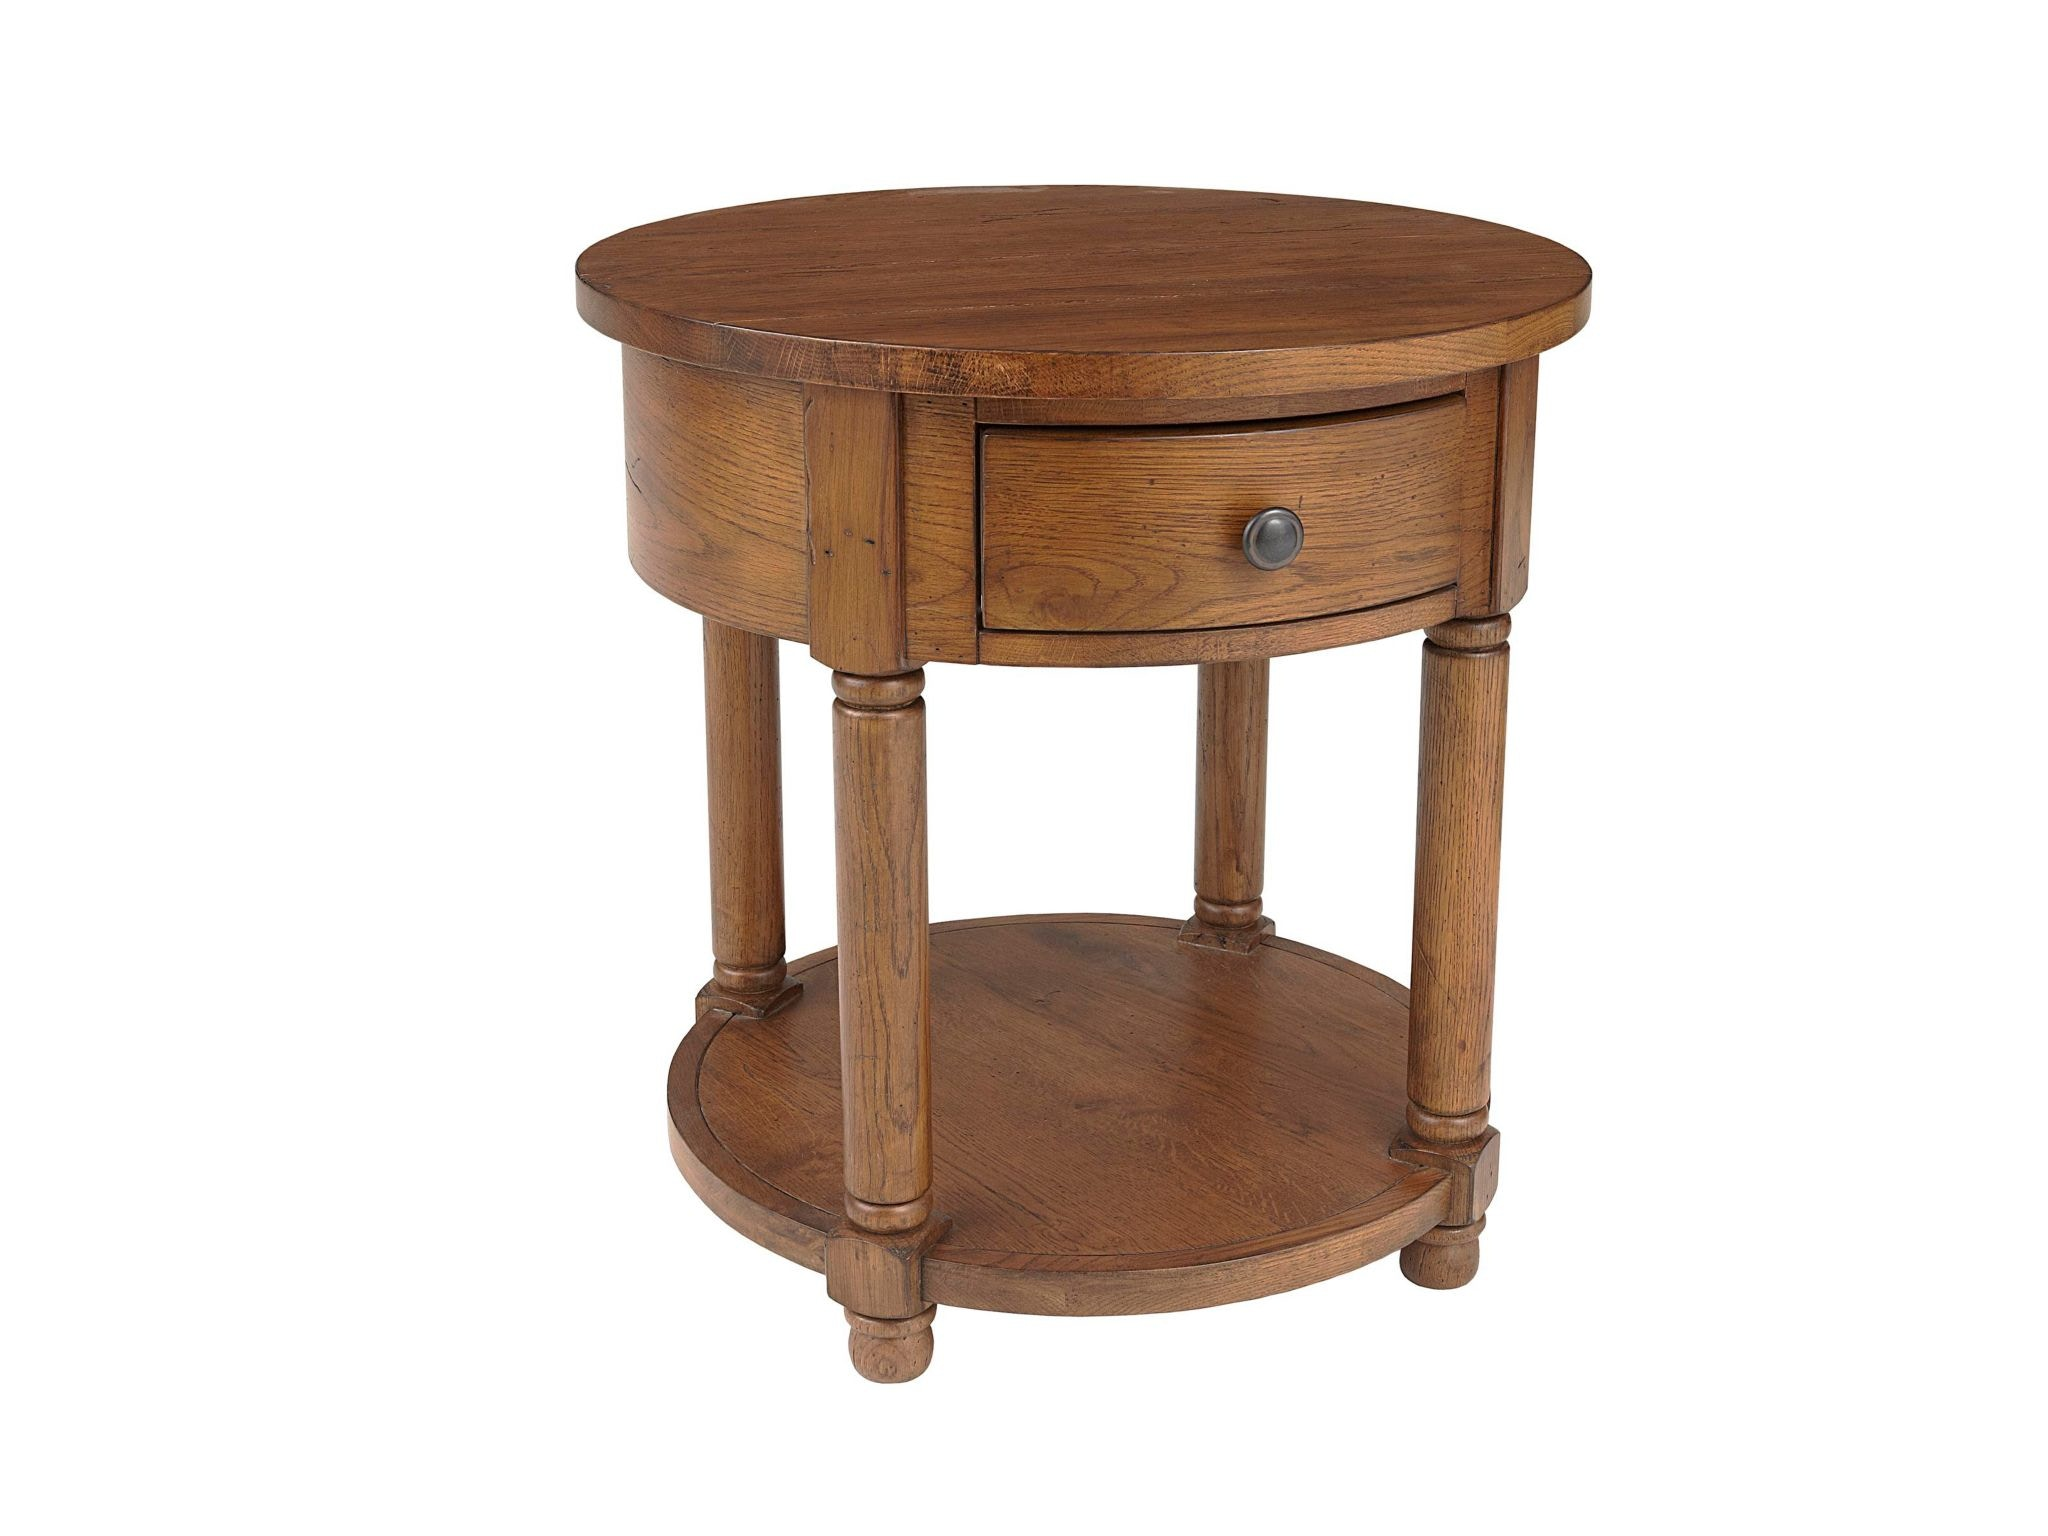 Broyhill Living Room Attic Heirlooms Round End Table